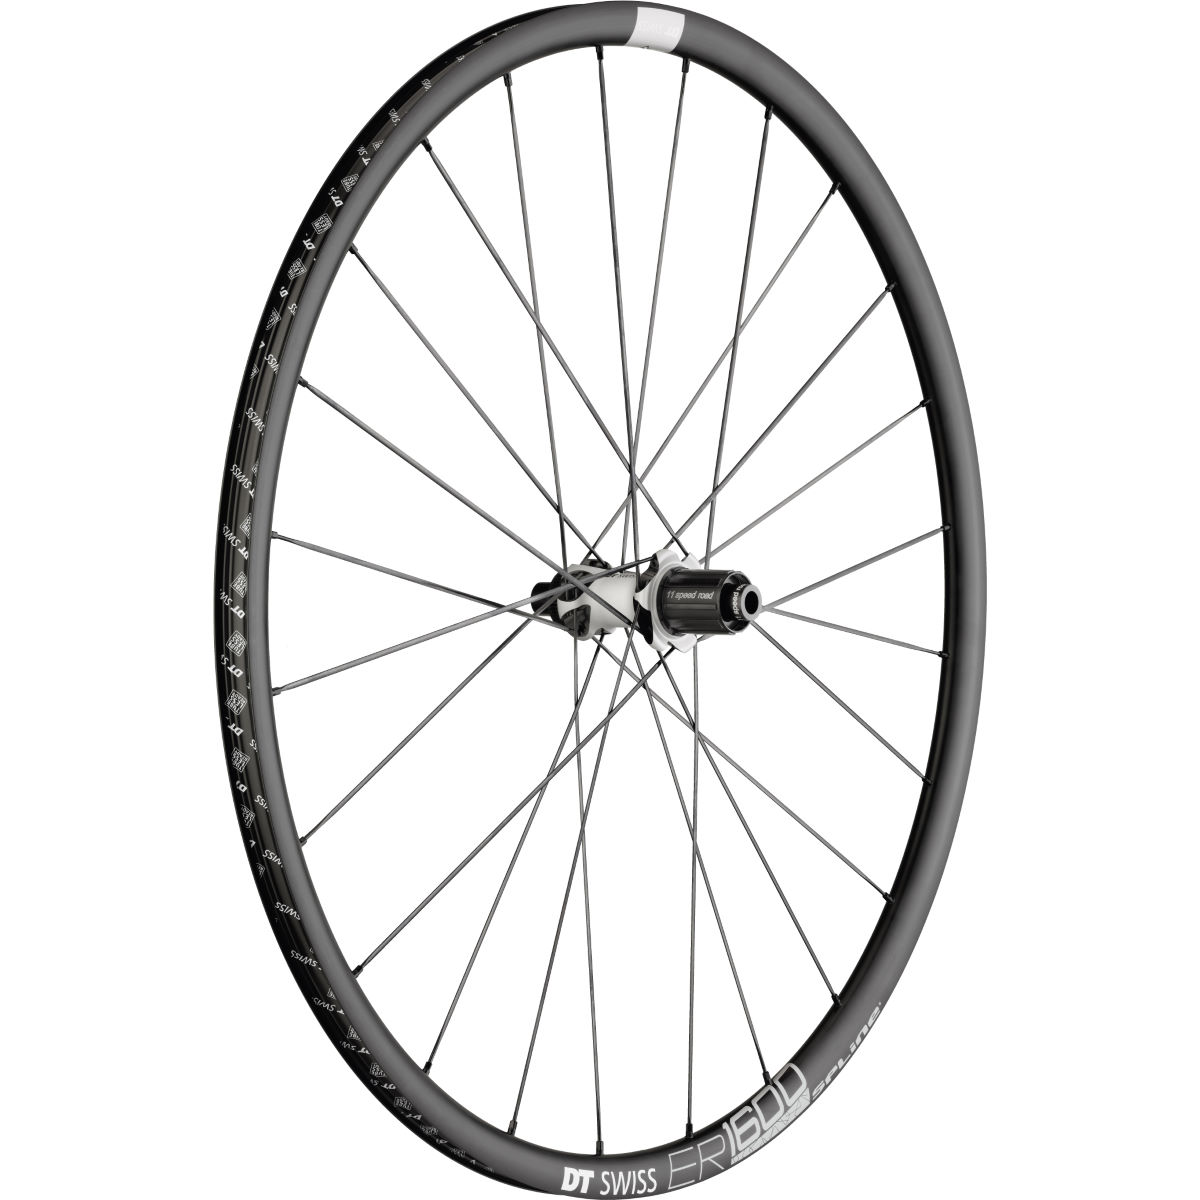 DT Swiss ER 1600 Spline DB Rear Road Wheel - Ruedas traseras